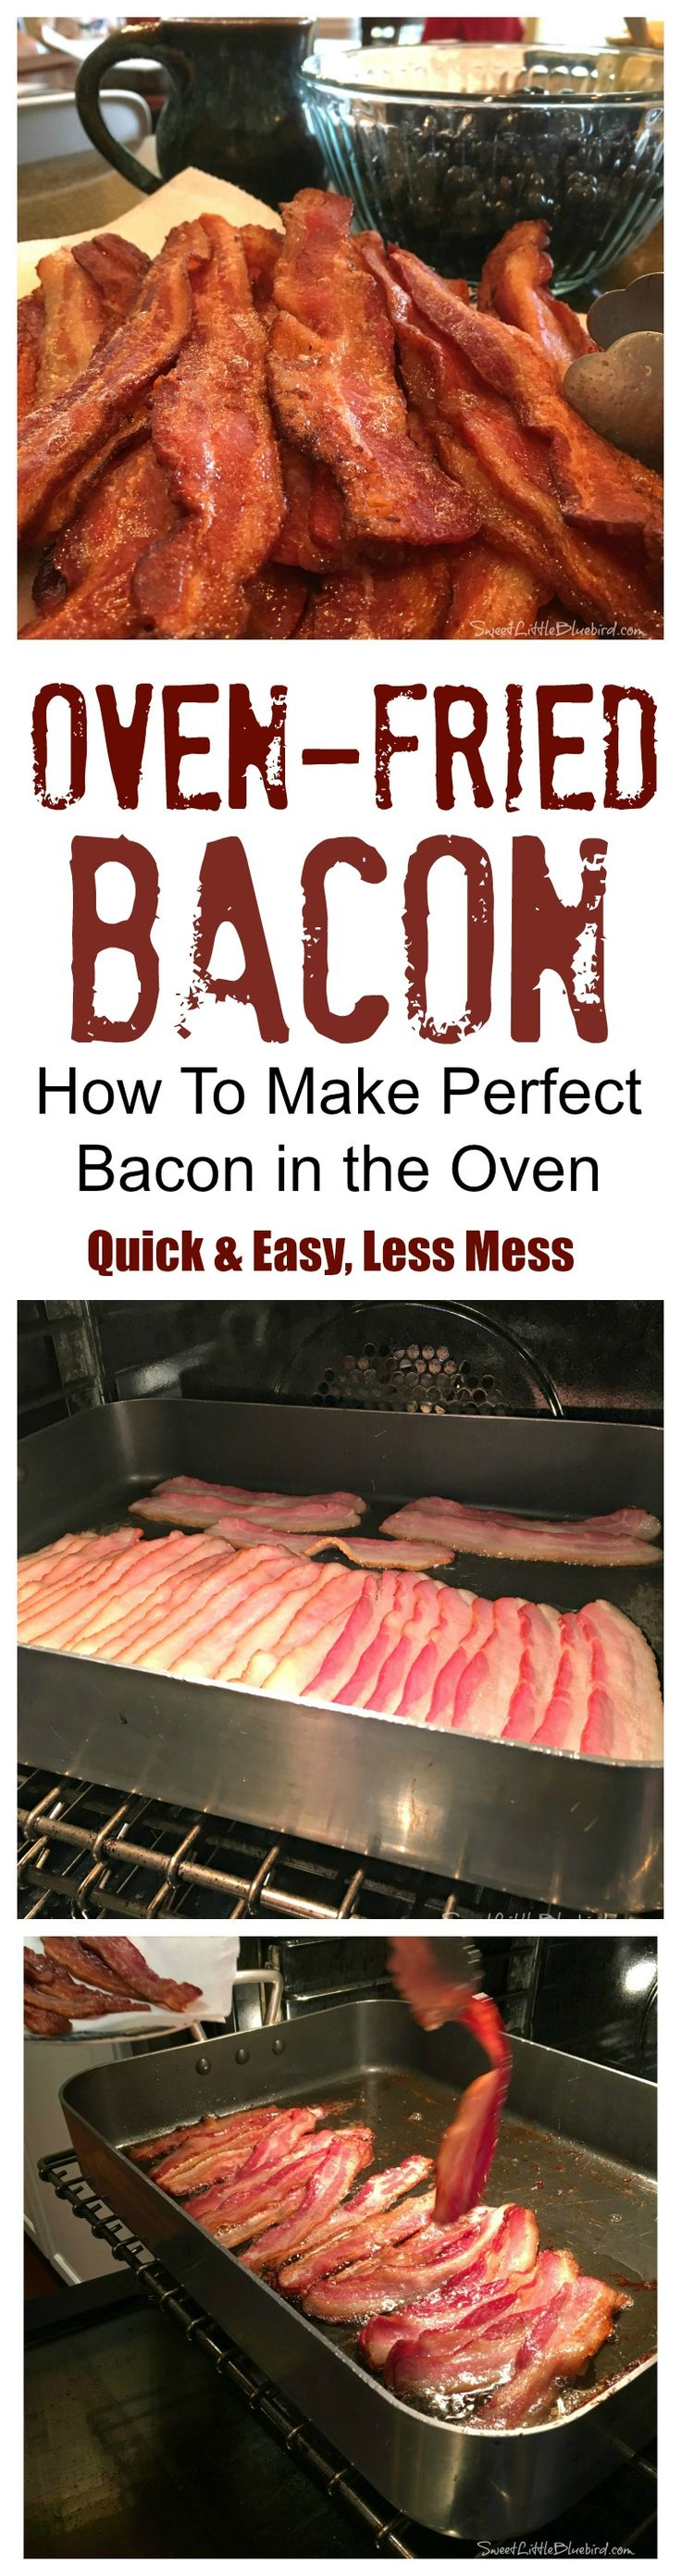 Oven-Fried Bacon - How To Make Perfect Bacon in the Oven